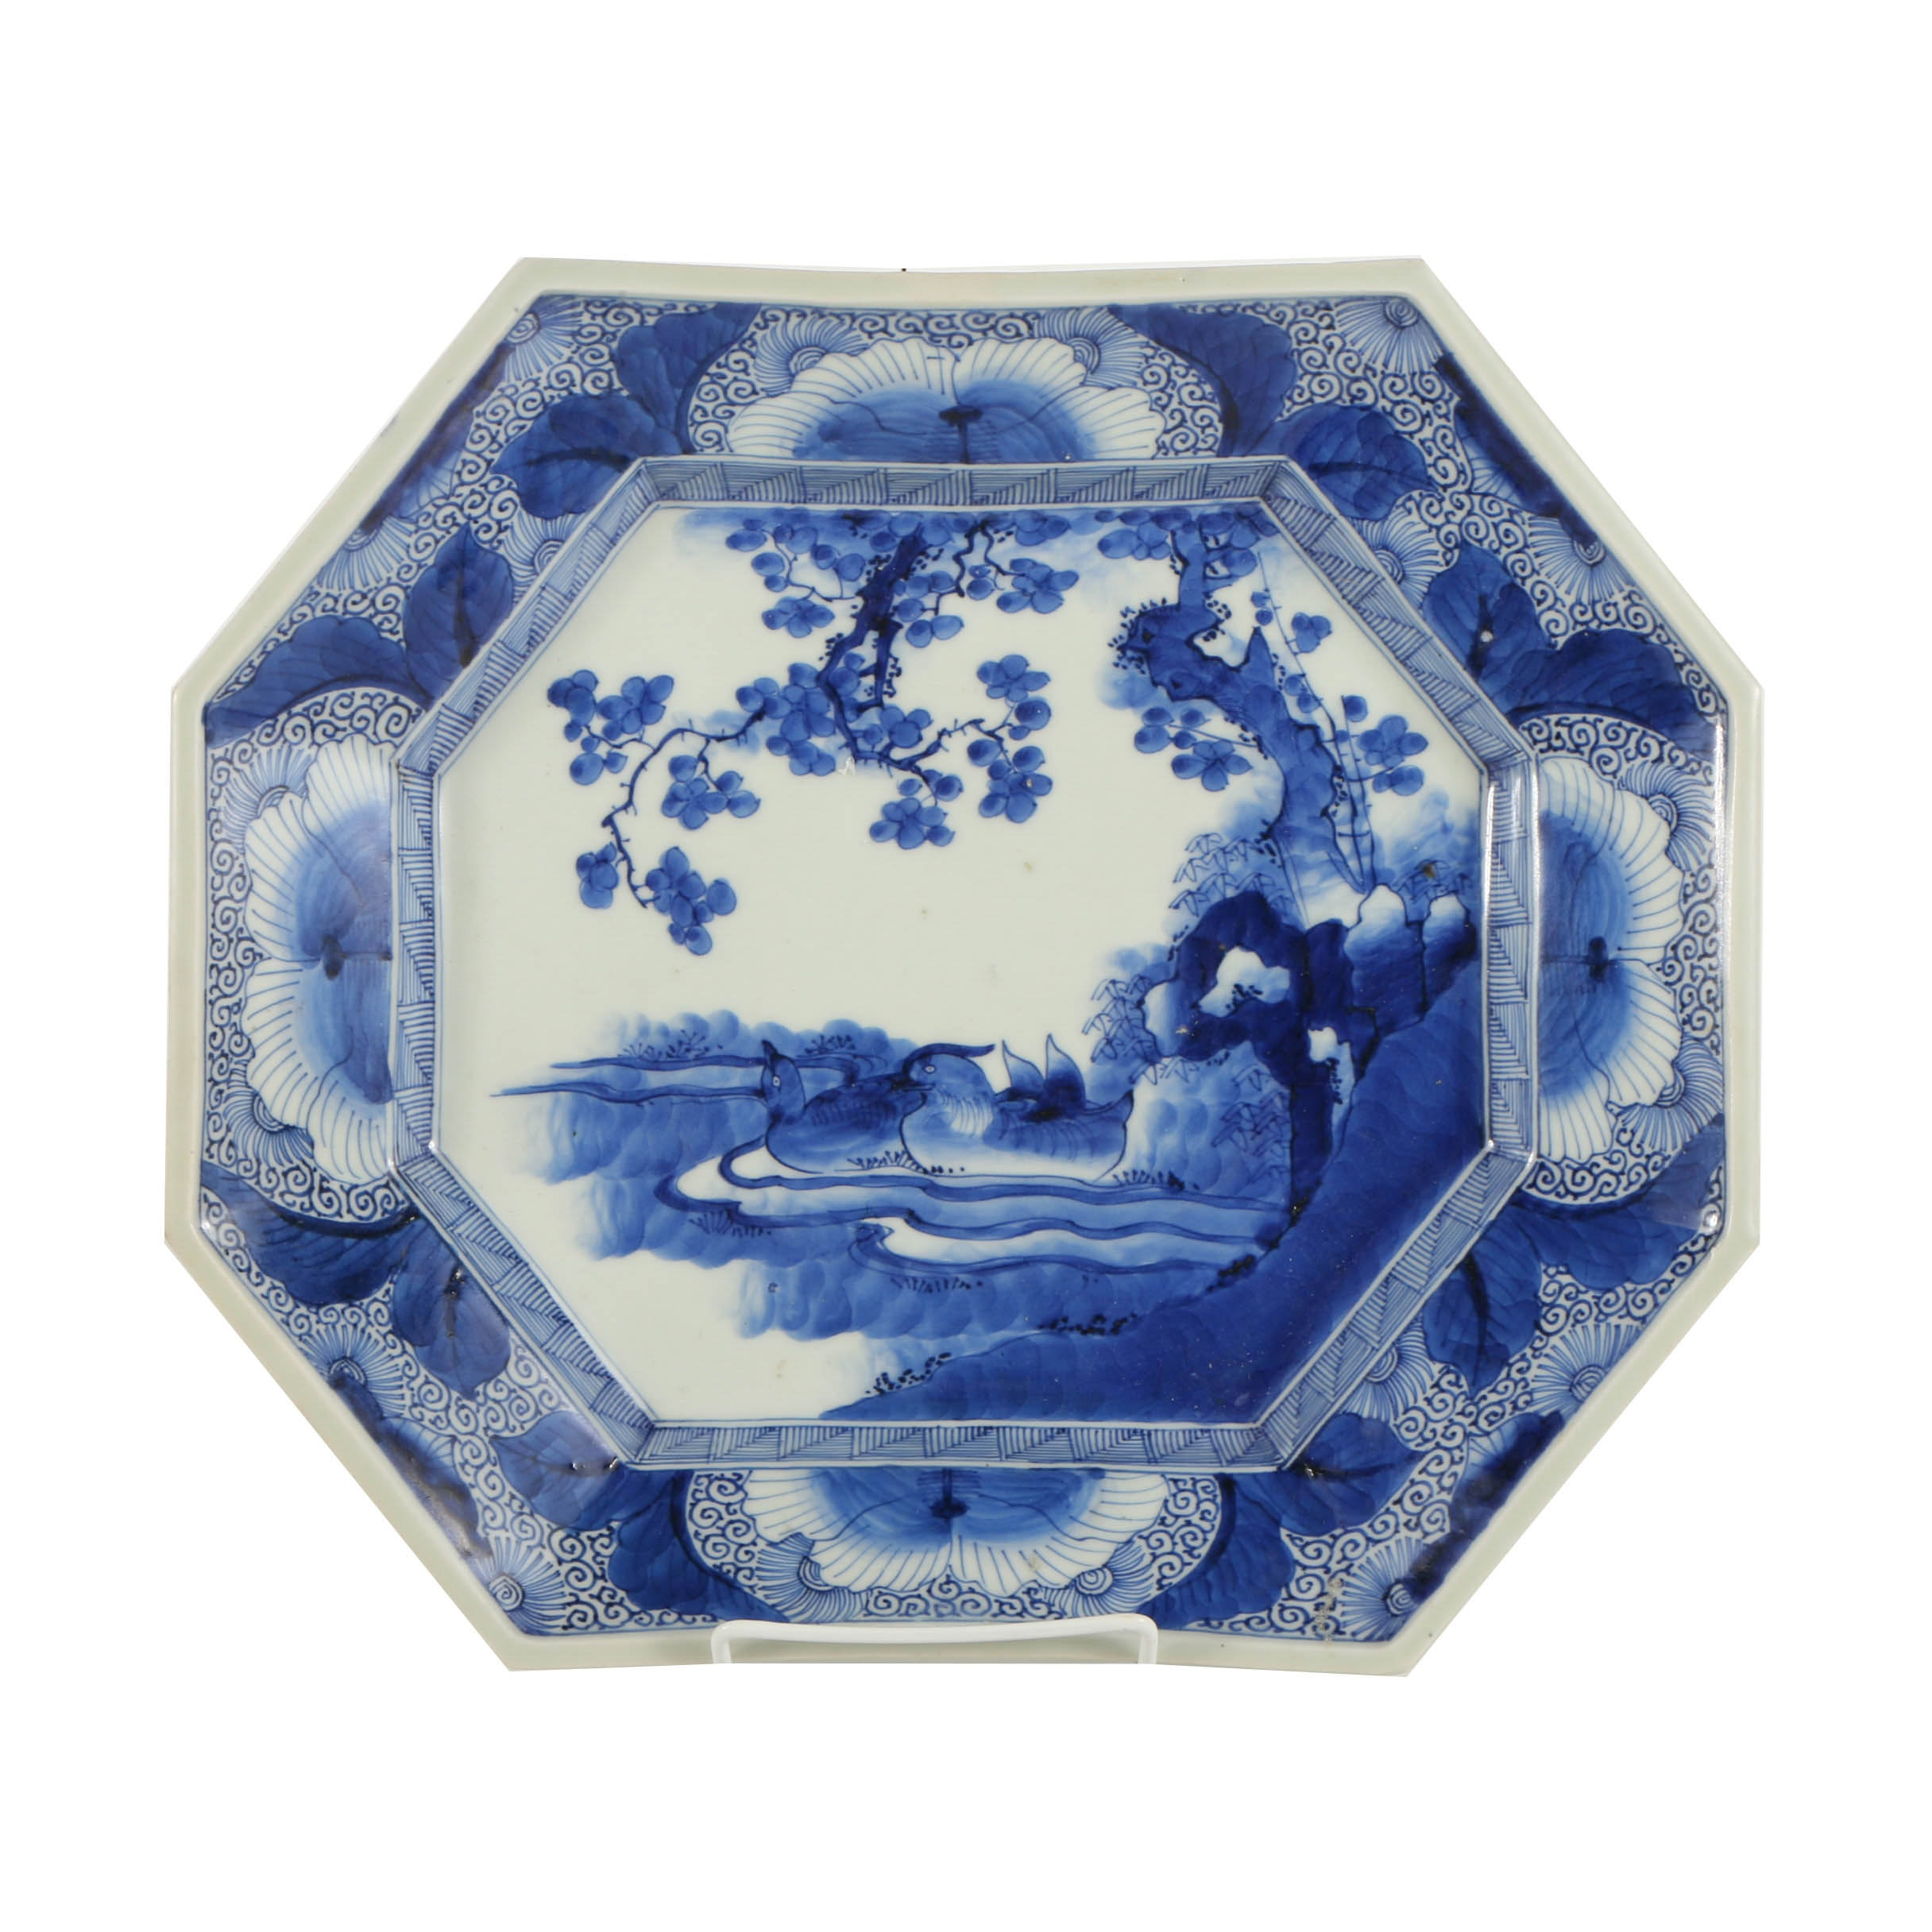 Early Meiji Period Platter Blue and White Platter